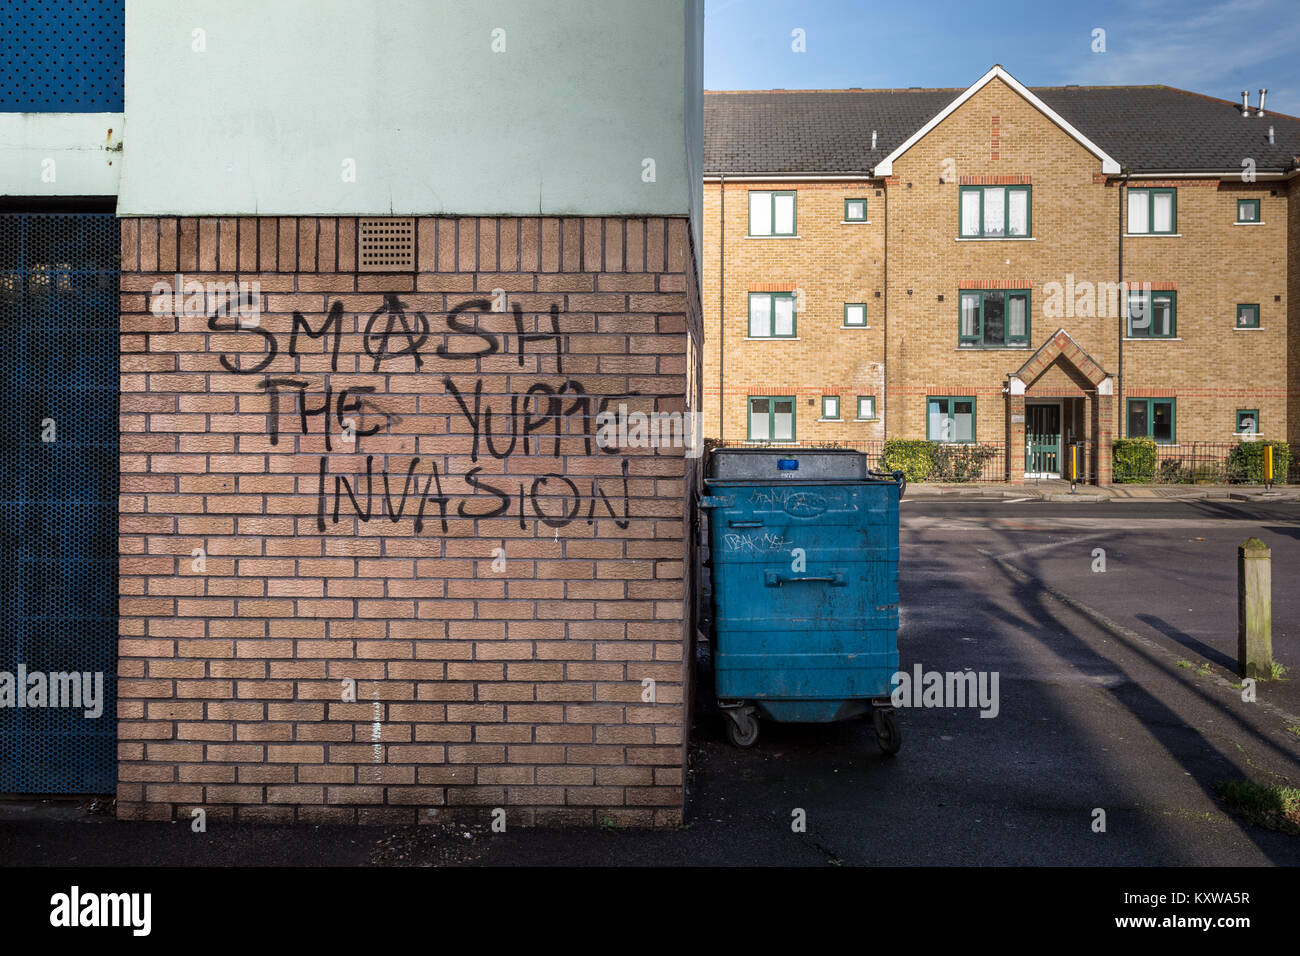 Anti-redevelopment graffiti seen in Deptford, south east London as on-going property developing takes place near - Stock Image